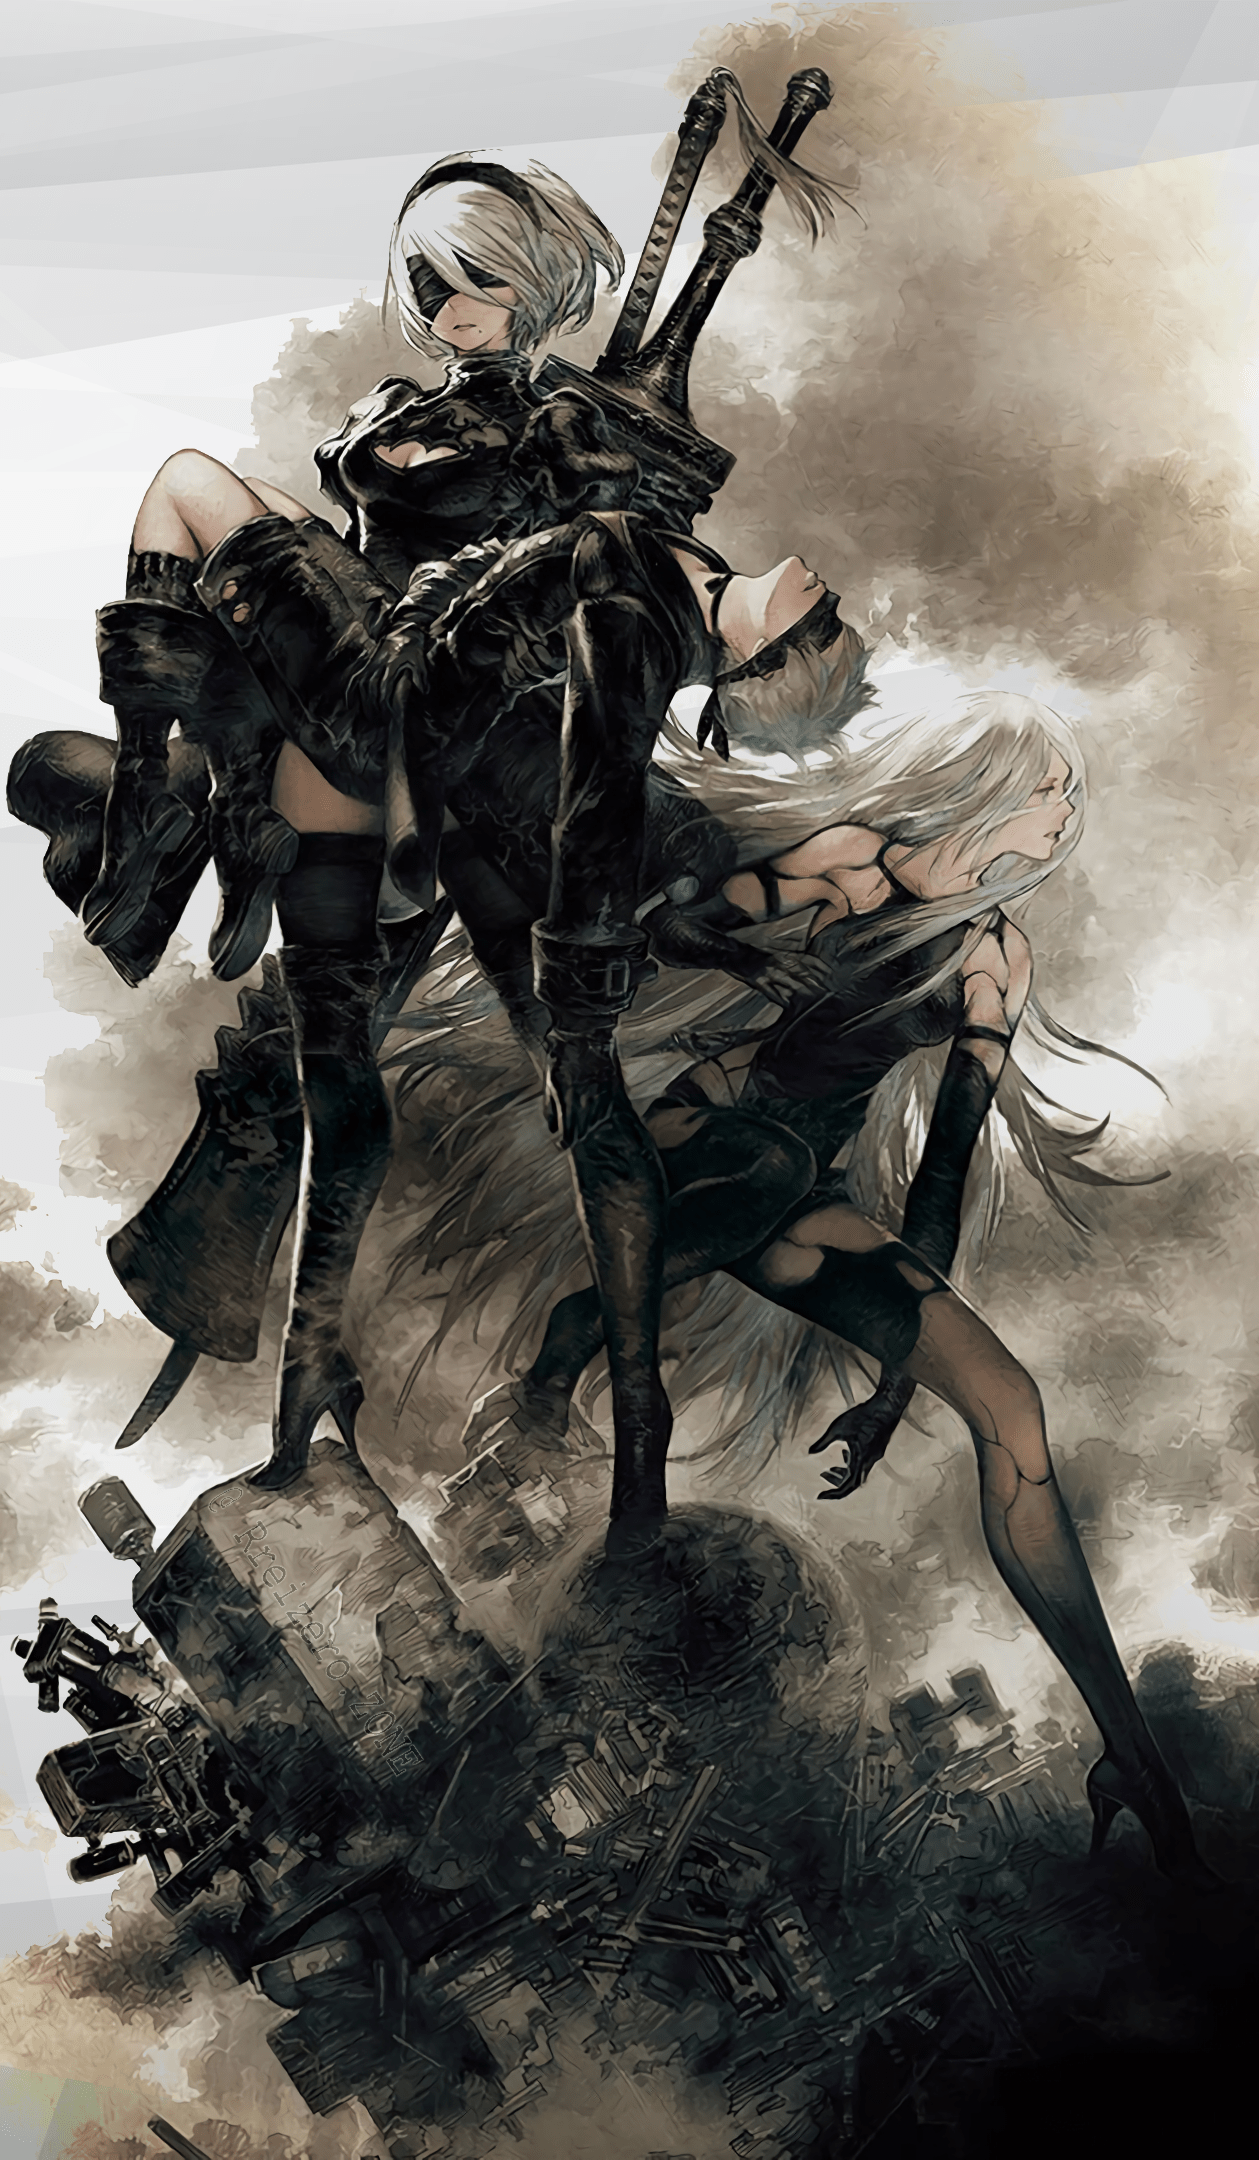 2b Phone Wallpaper : phone, wallpaper, Automata, Phone, Wallpapers, Wallpaper